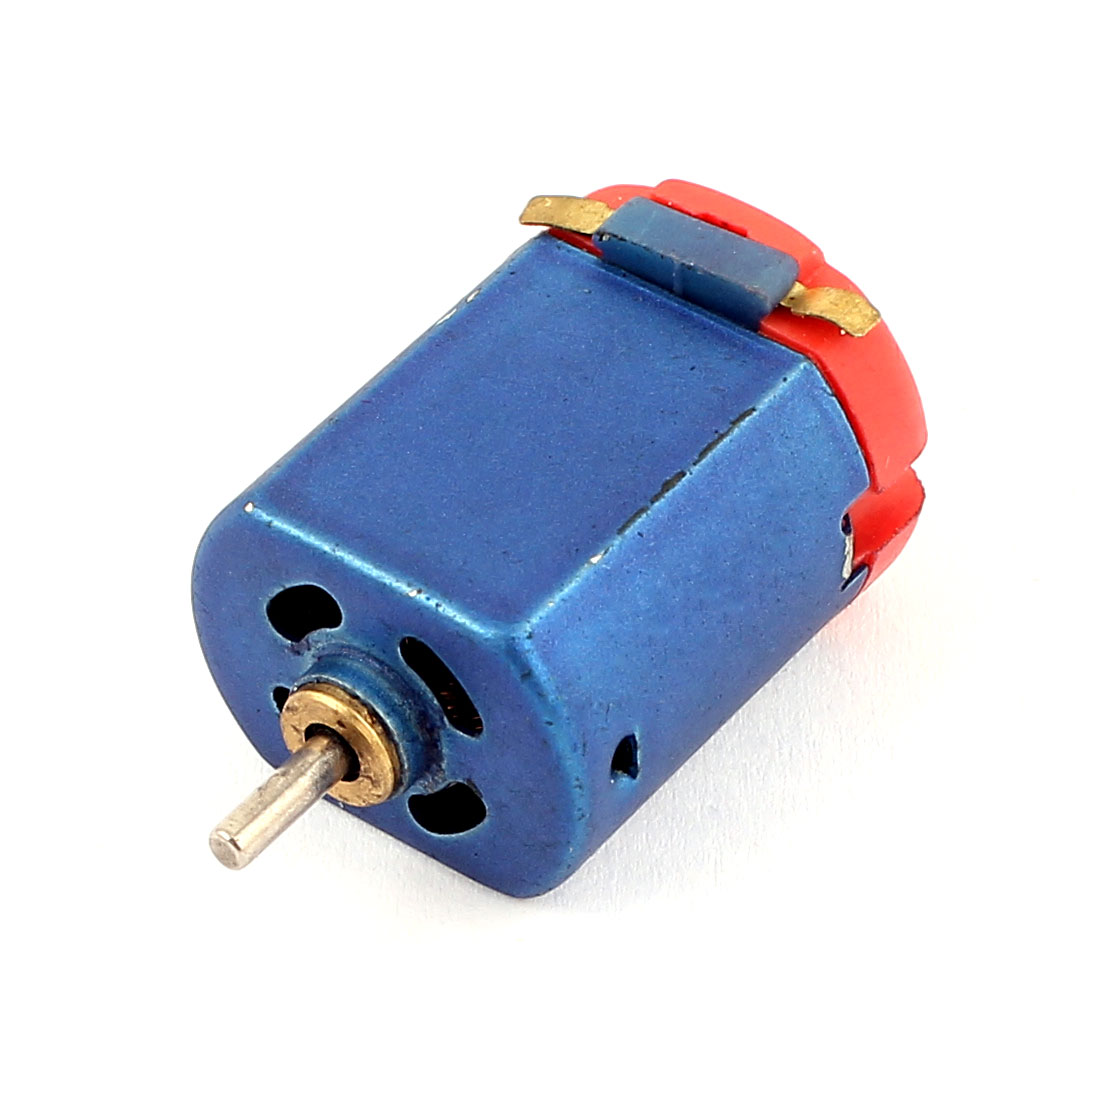 DC 1.5-4.5V 18000RPM Speed Output High Torque Magnetic Mini Motor for RC Plane Boat Car